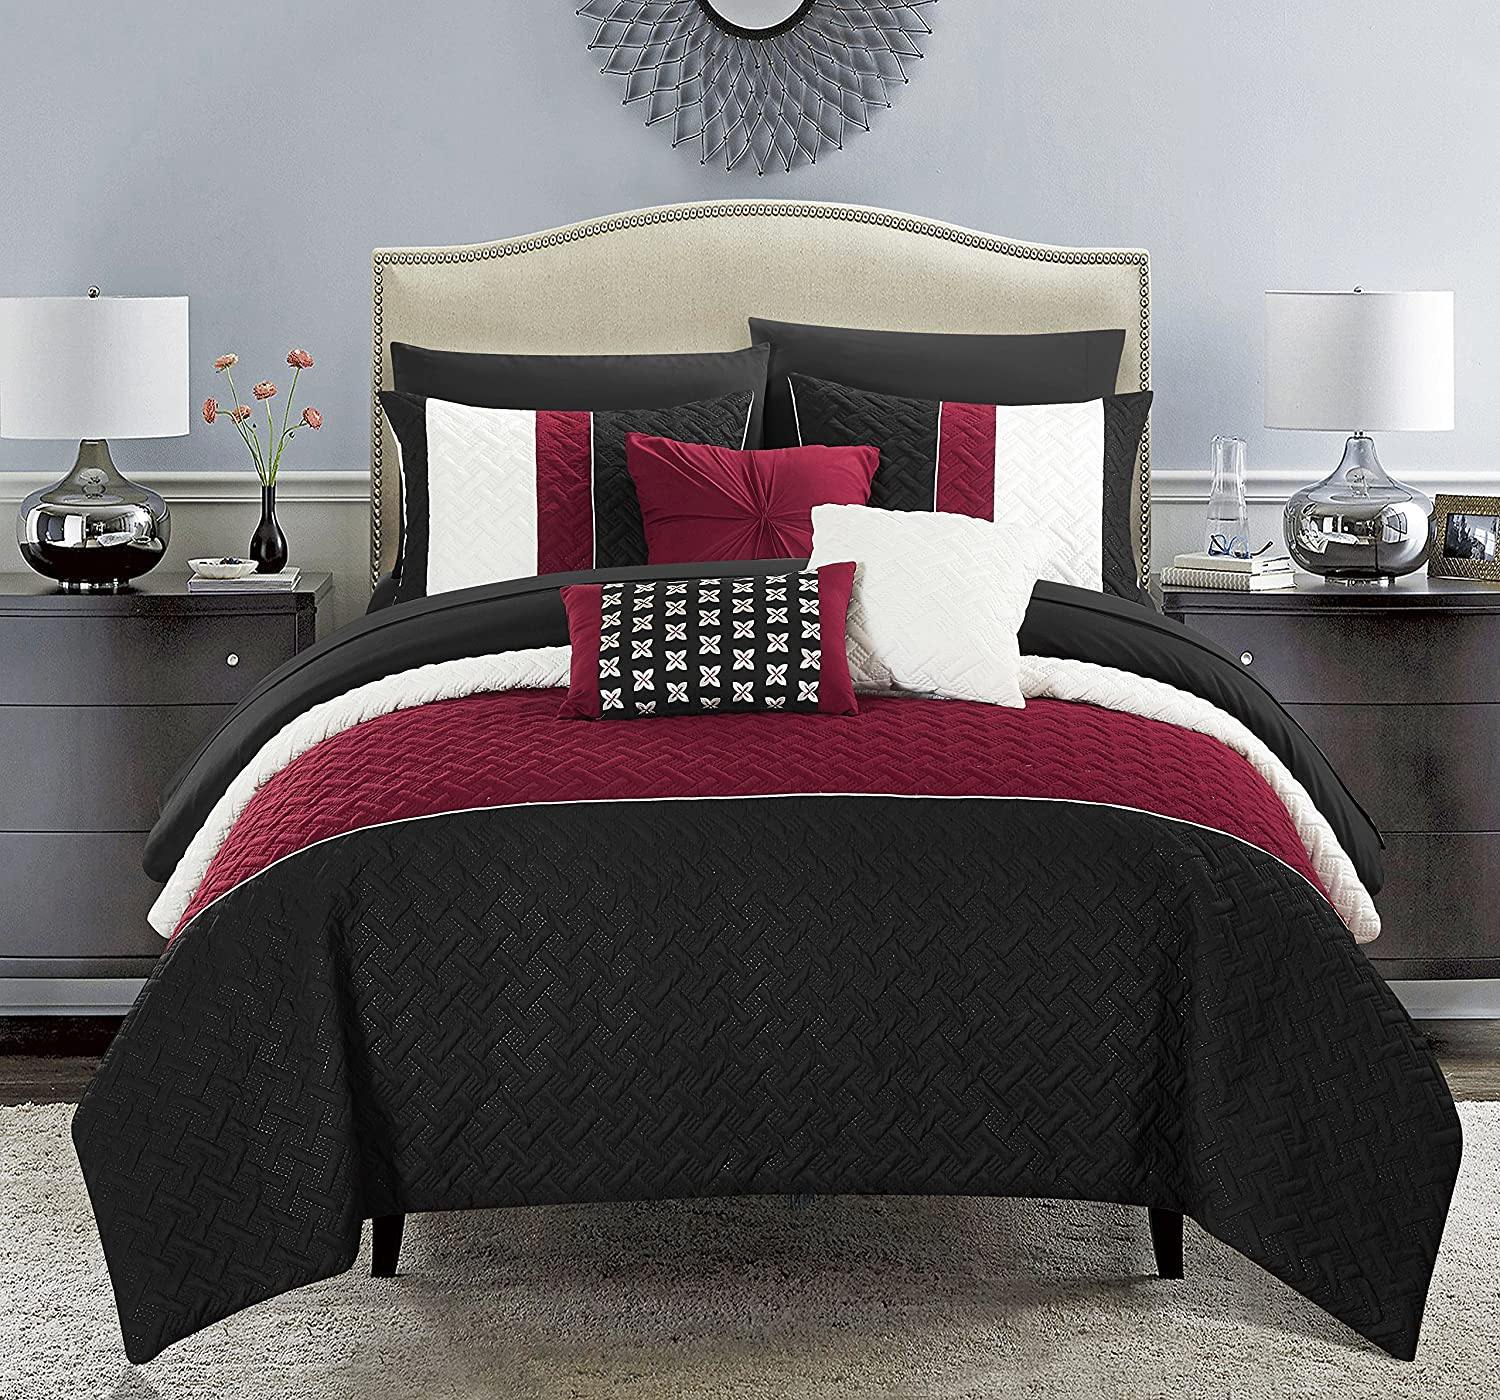 Embroidered Design Bed in a Bag Bedding – Sheets Decorative Pillows Shams Included King Black